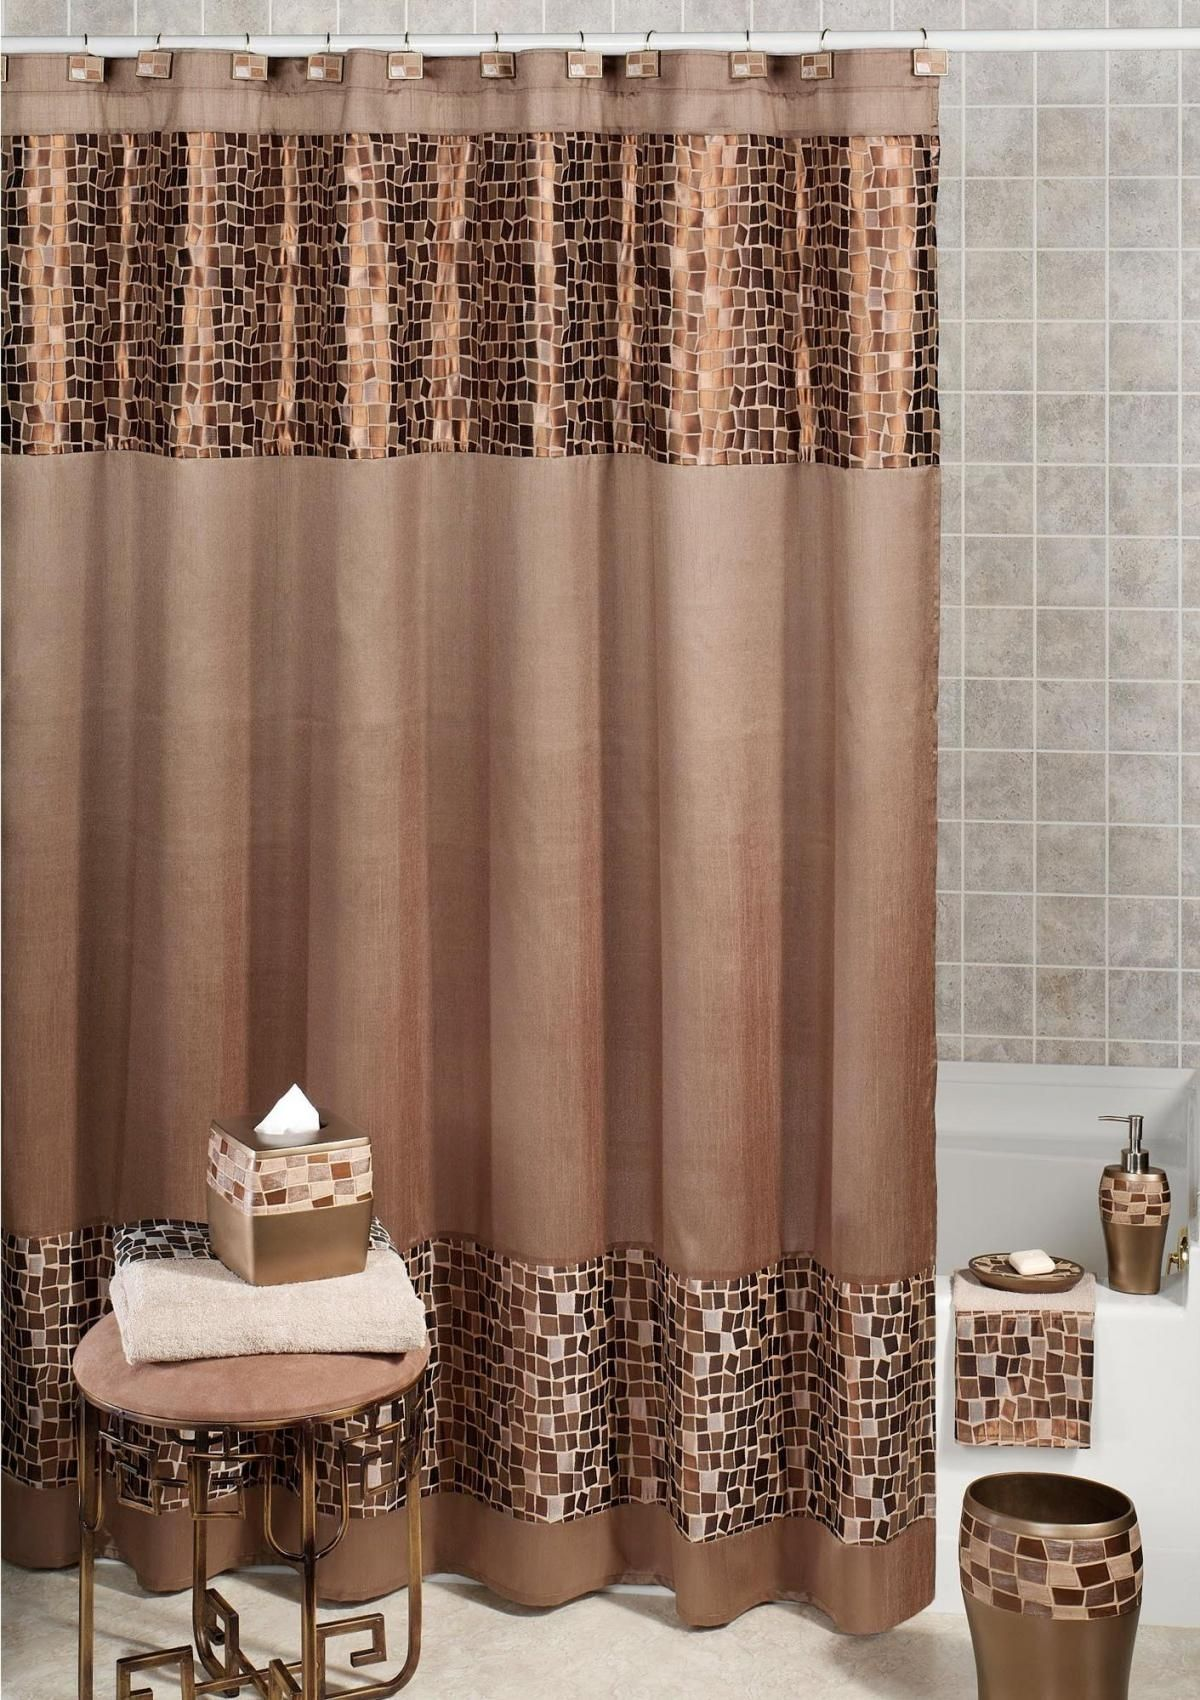 Find Inspiration About Copper Colored Shower Curtain Gallery Of